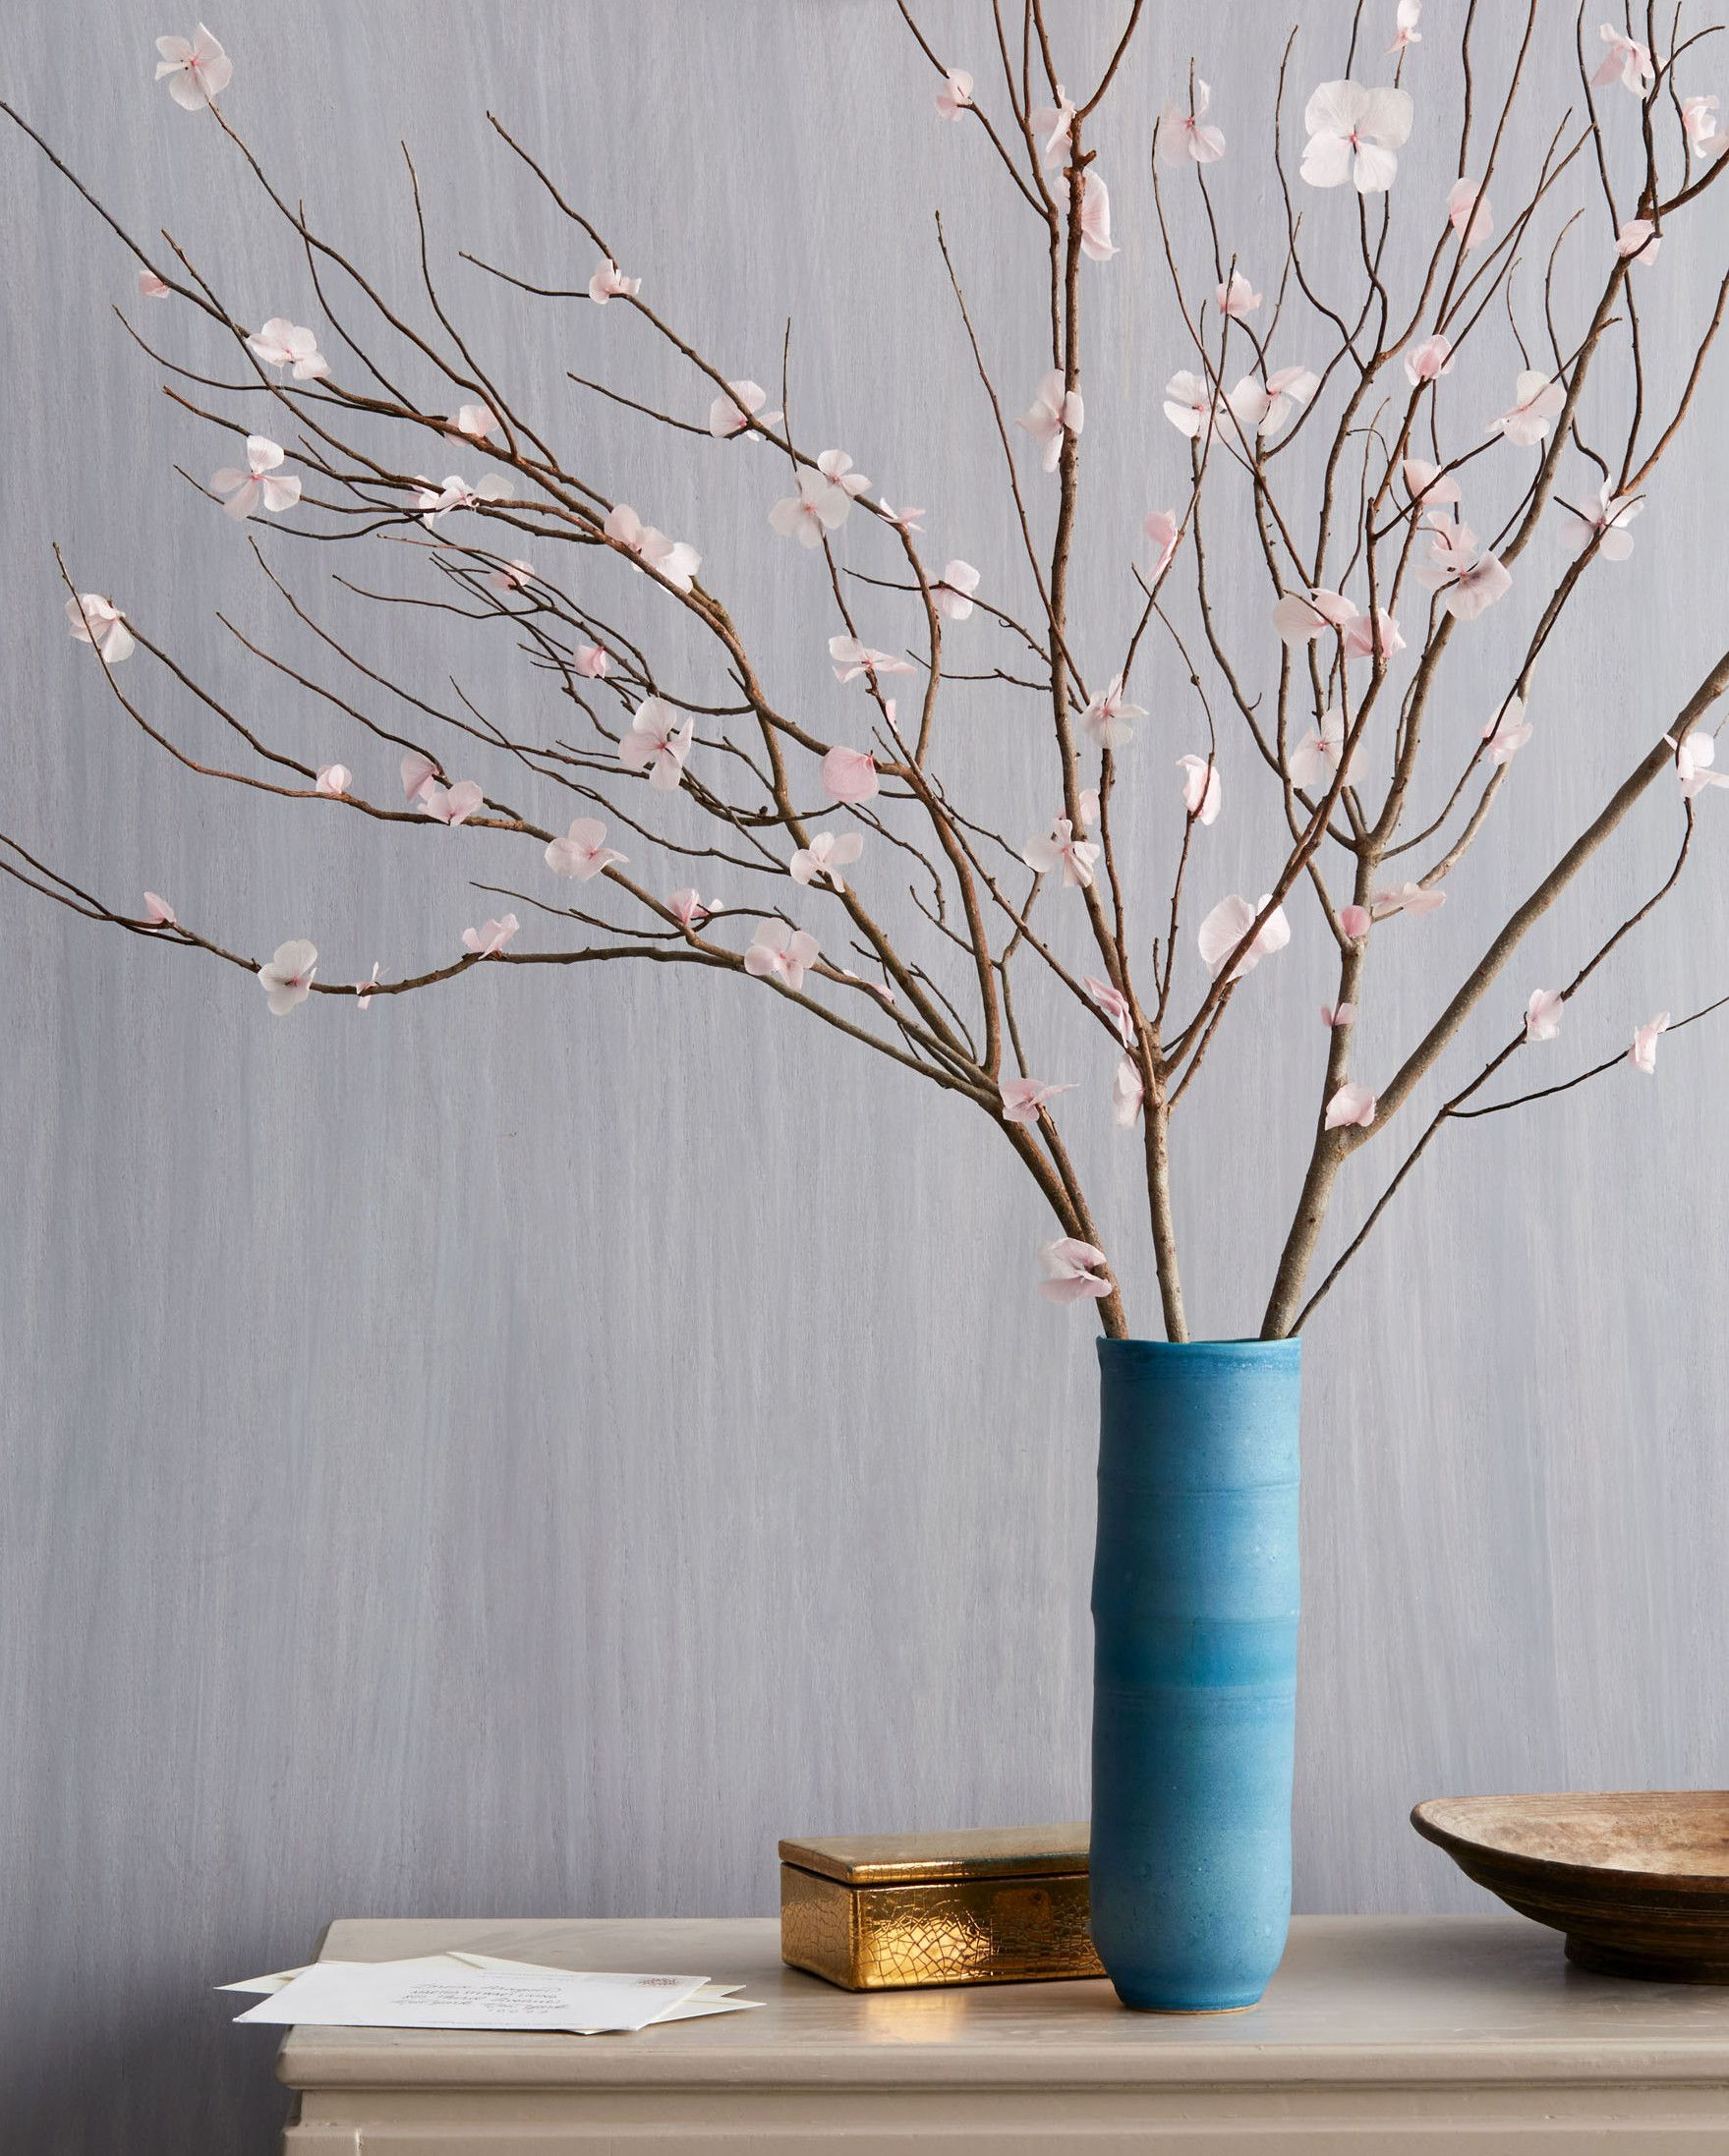 Dried Floral Branches Branches Diy Dry Branches Decoration Floral Branch